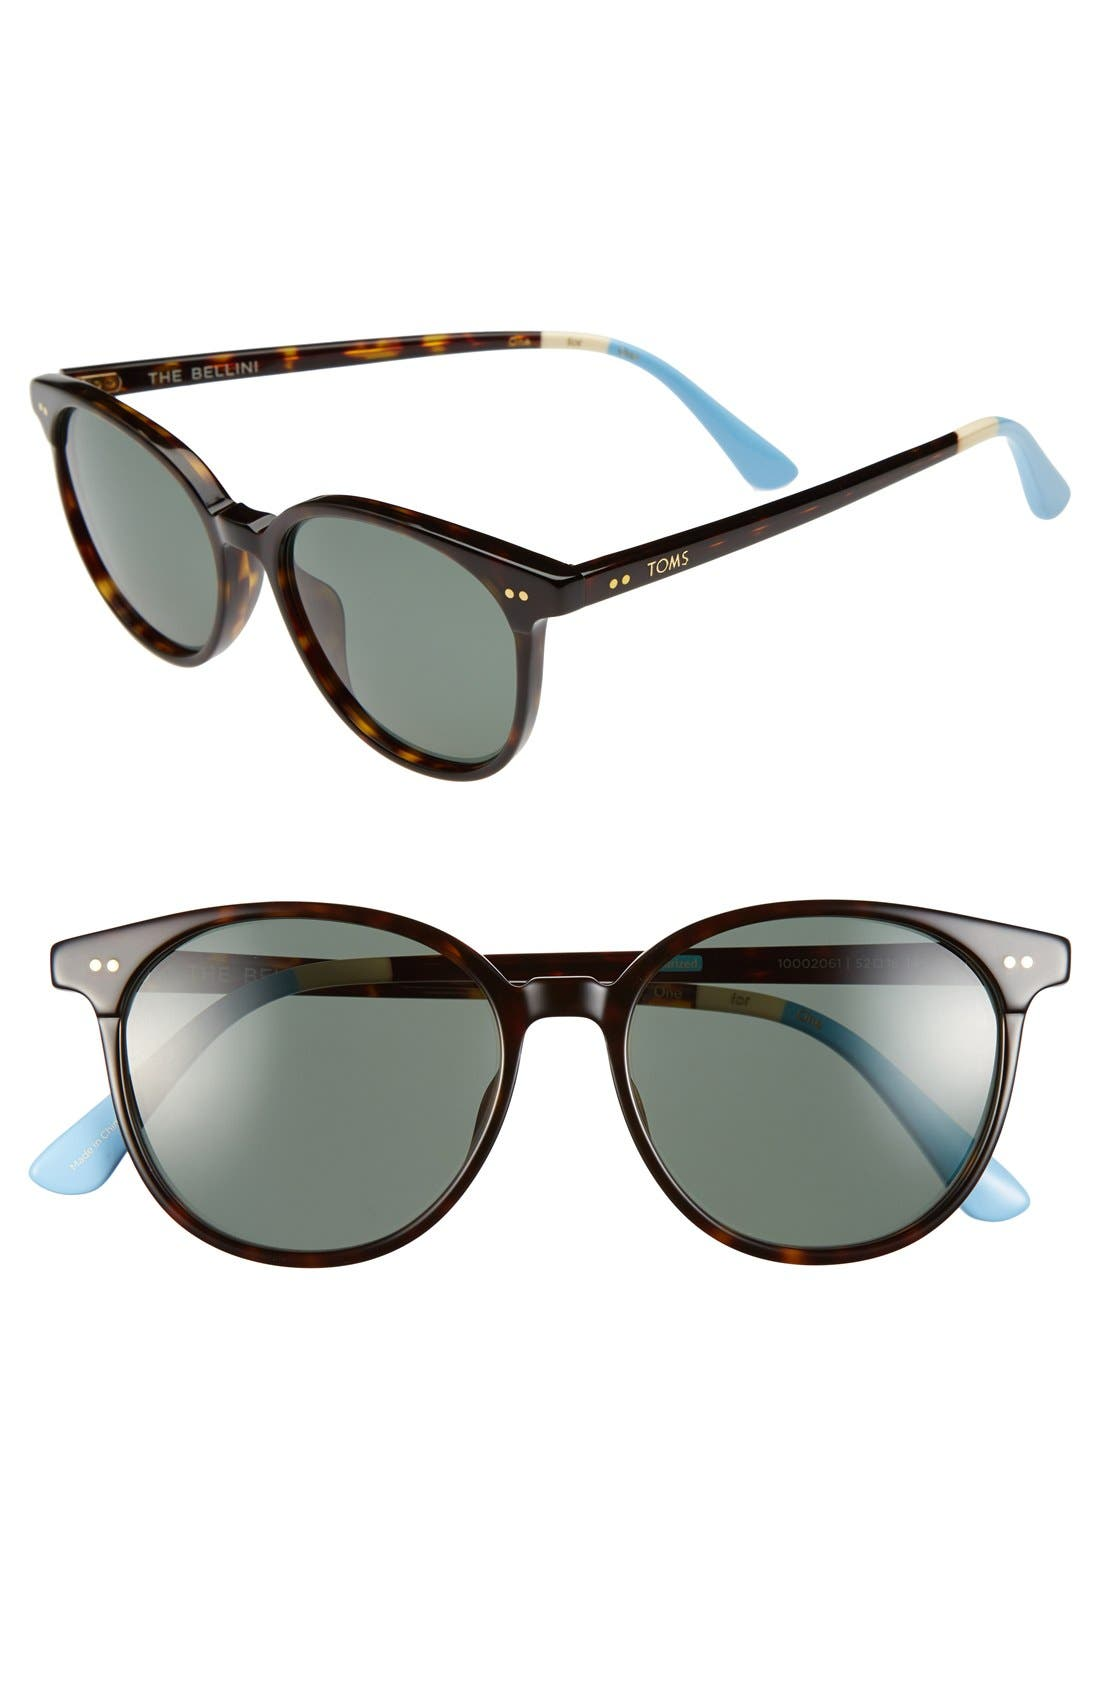 Main Image - TOMS 'Bellini' 52mm Polarized Sunglasses